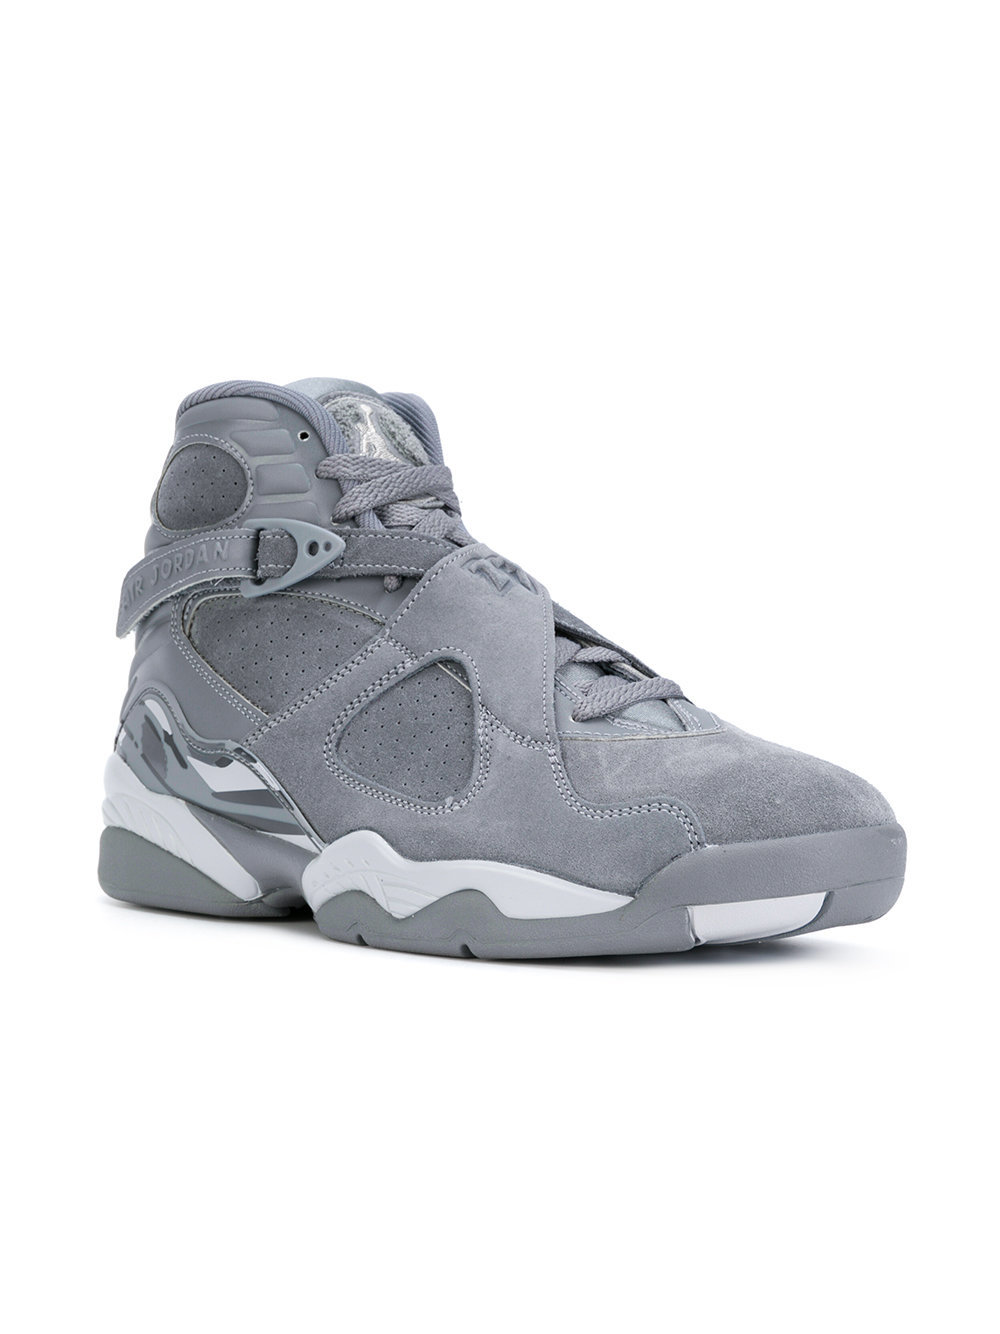 huge selection of 82fd8 ec806 ... Nike Air Jordan Retro 8 Sneakers ...